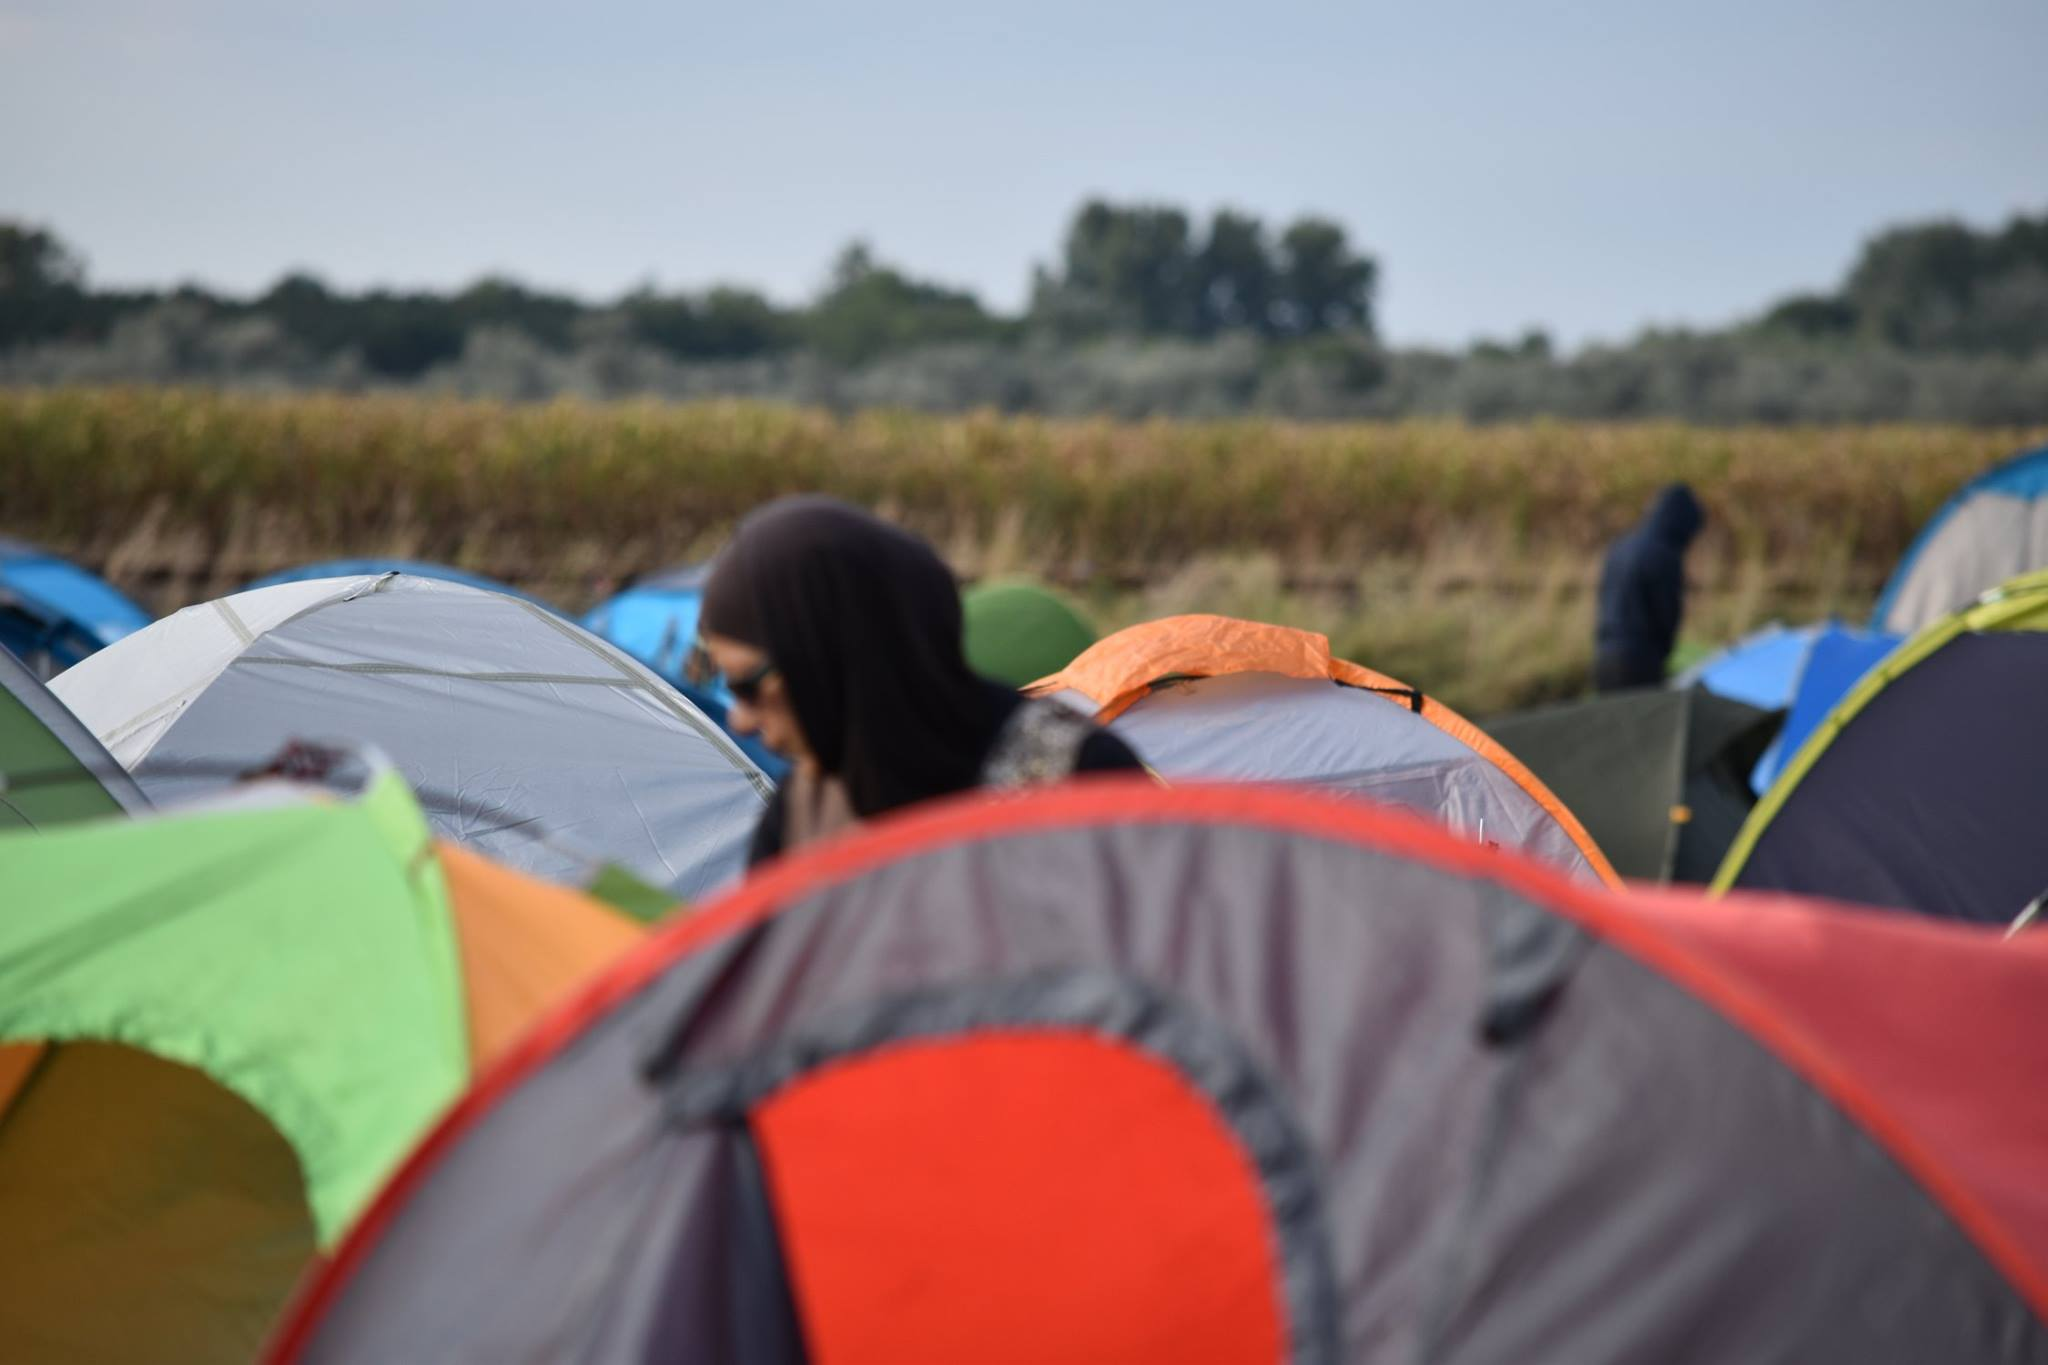 This-is-the-tent-city-as-the-camp-Today-we-worked-on-creating-order-a-family-section-a-single-section-a-section-for-vulnerable-people.jpg